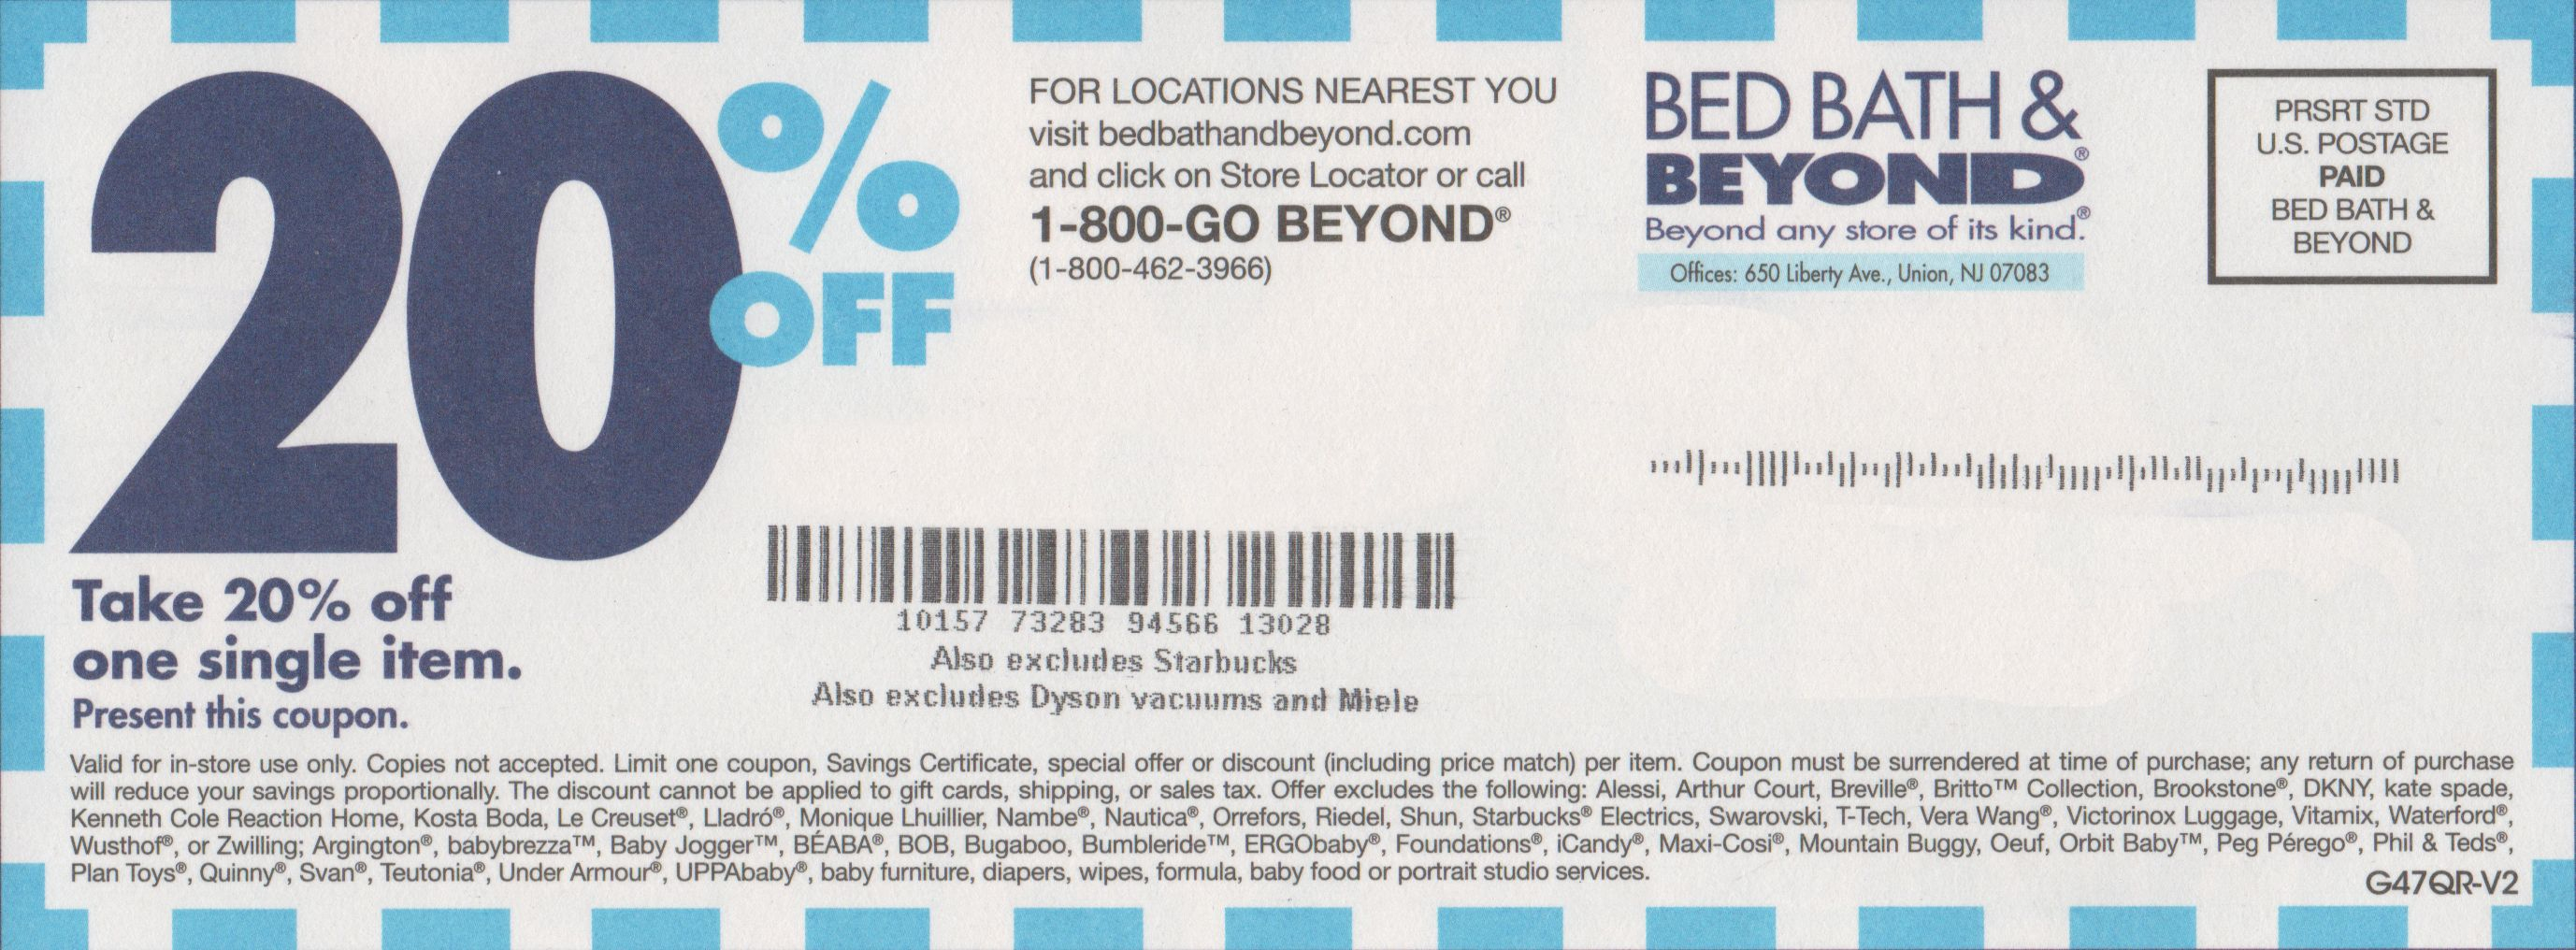 Bed Bath & Beyond Printable Coupon 20 Percent Off In-Store | Bed - Free Printable Bed Bath And Beyond 20 Off Coupon